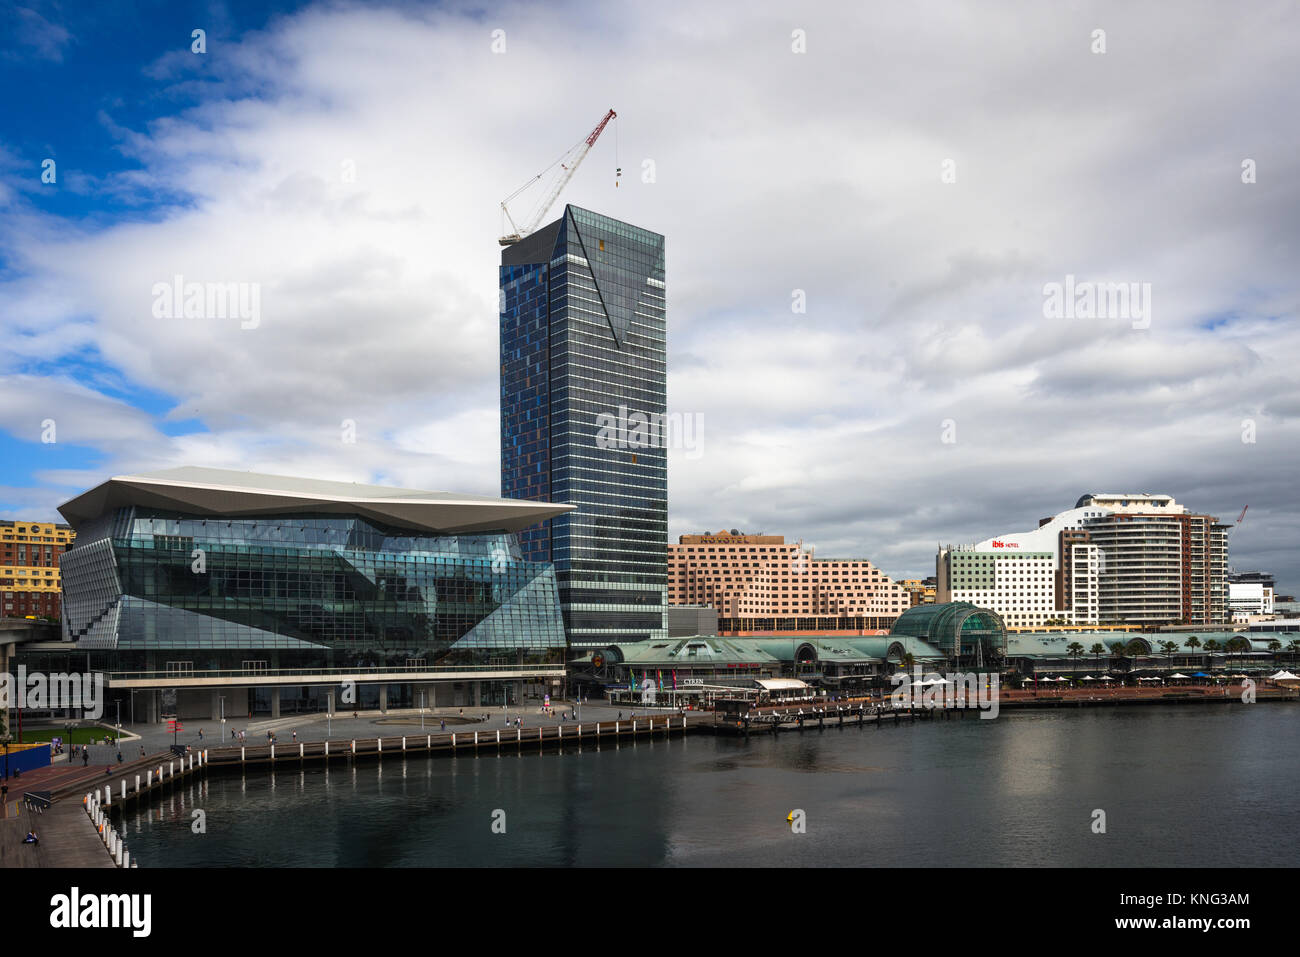 International Convention Centre Sydney ICC, Sofitel, Novotel, Ibis hotels and Harbourside shopping & restaurant - Stock Image